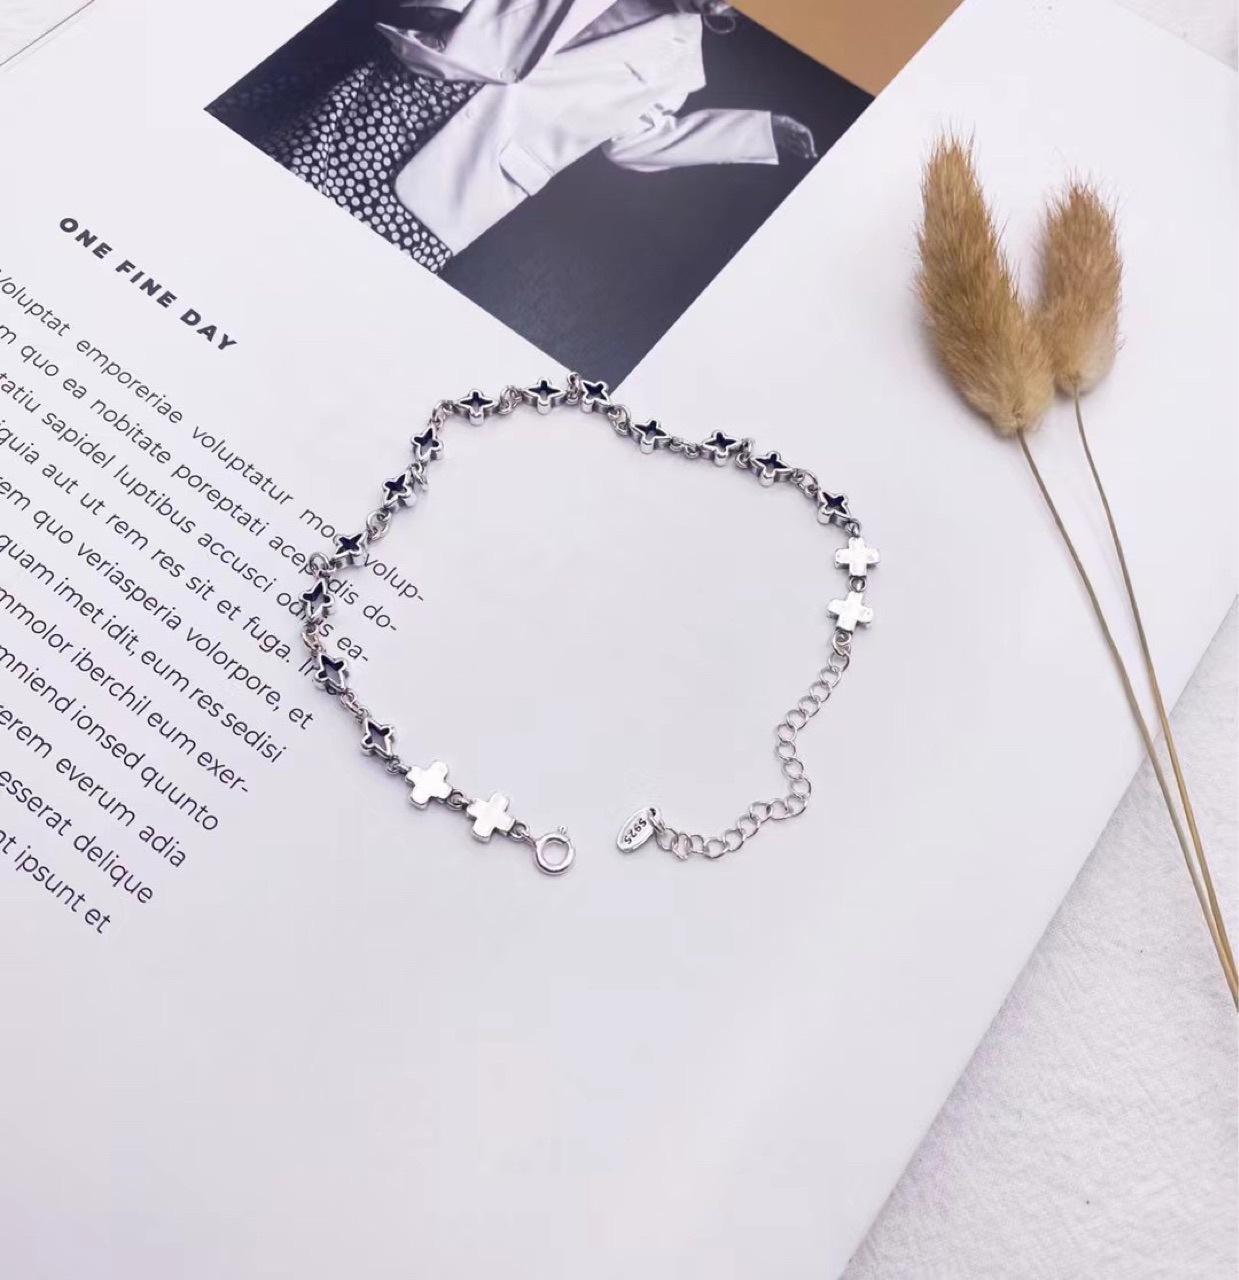 Fashionable Celestial Star Pattern 925 Silver Anklets for Voguish Outfits